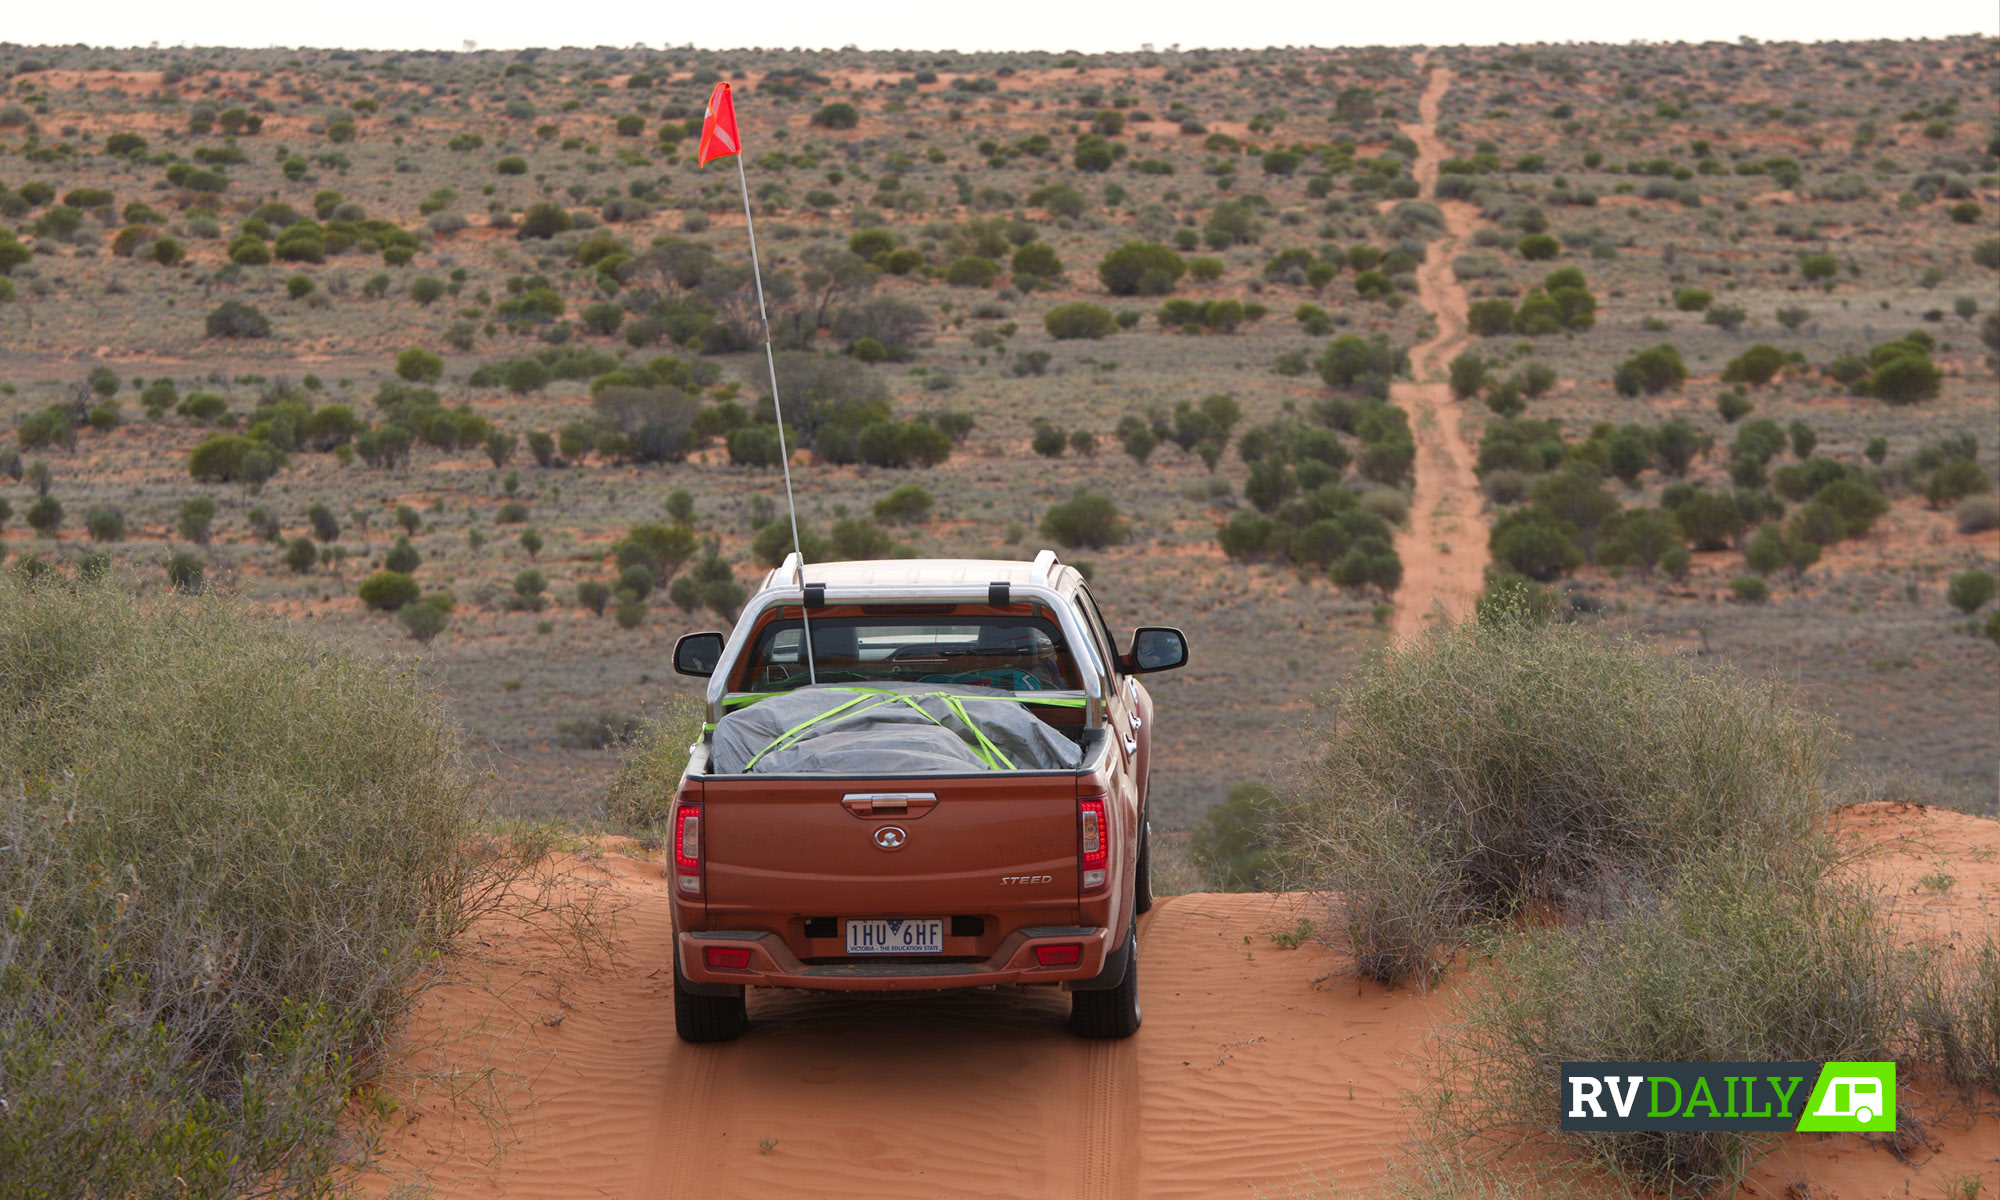 A dual-cab ute for less than $20K